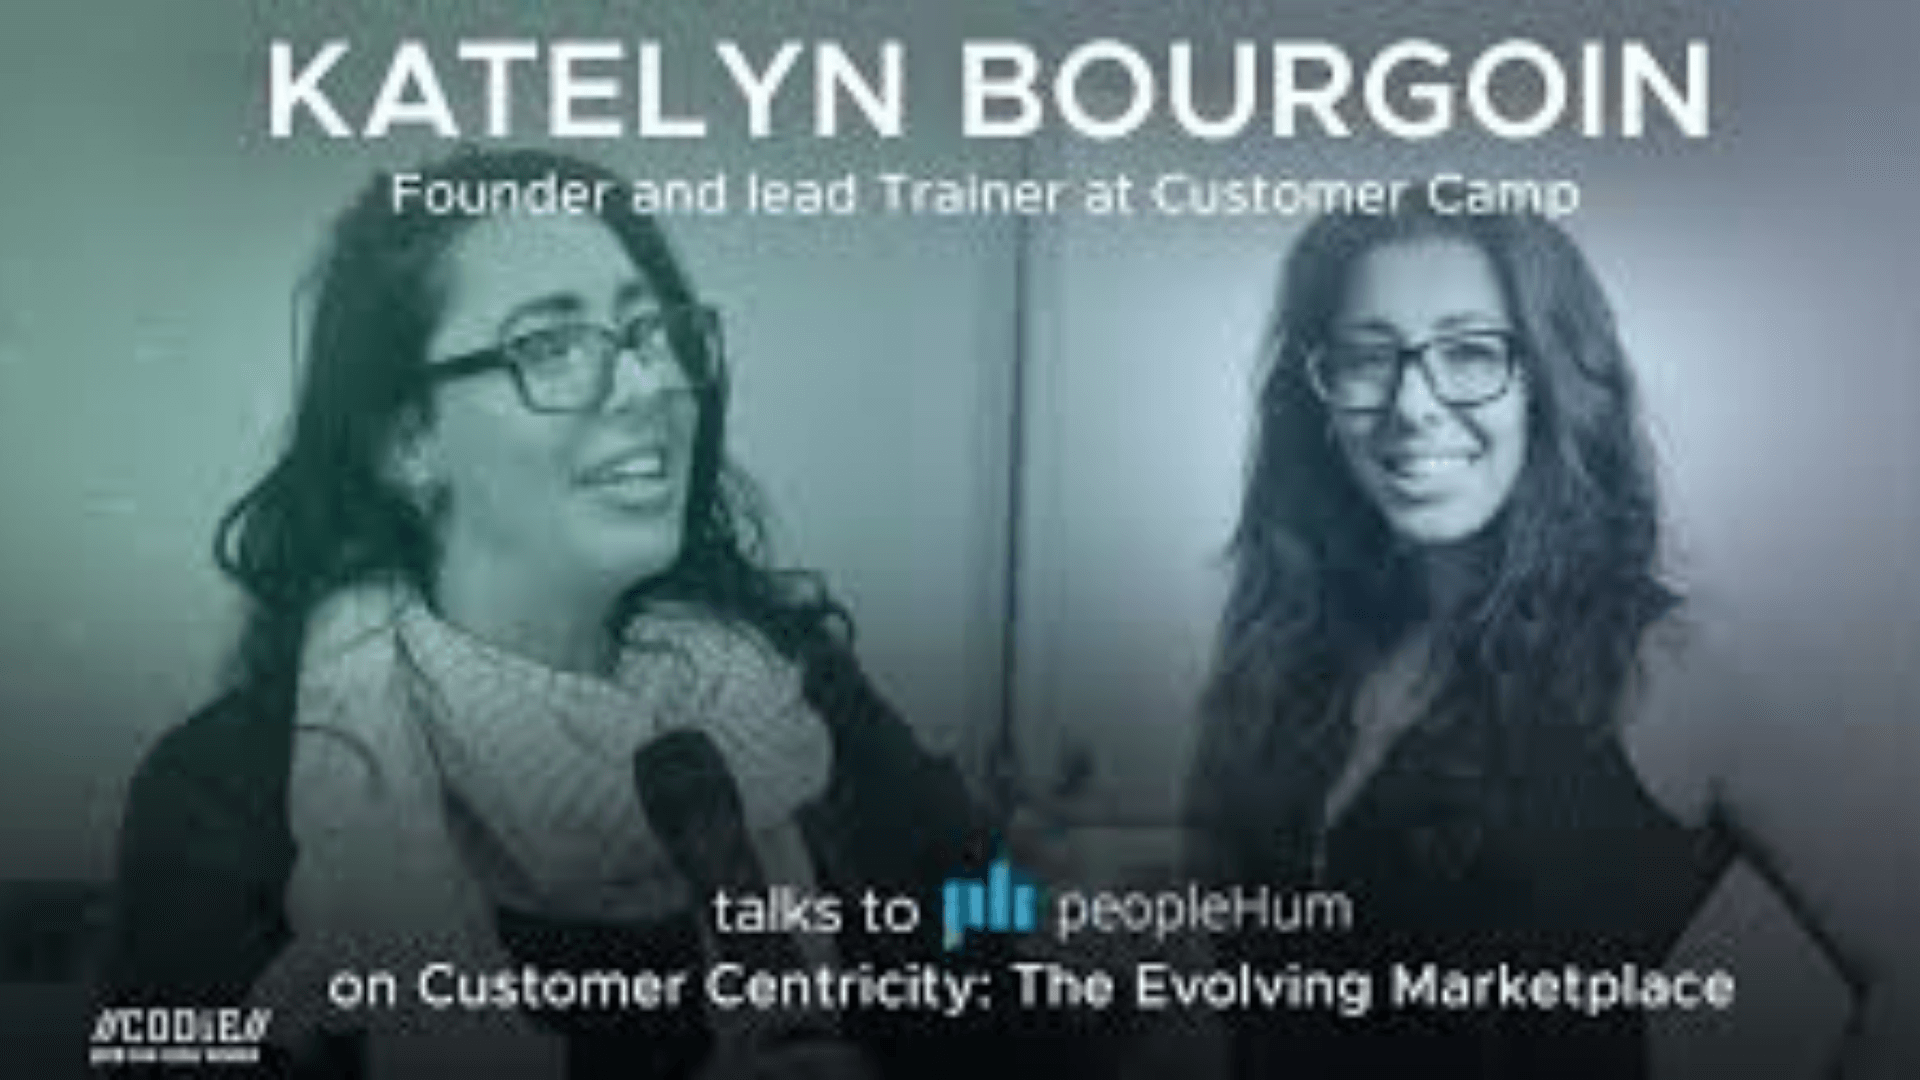 Customer Centricity: The Evolving Marketplace- Katelyn Bourgoin [Interview]